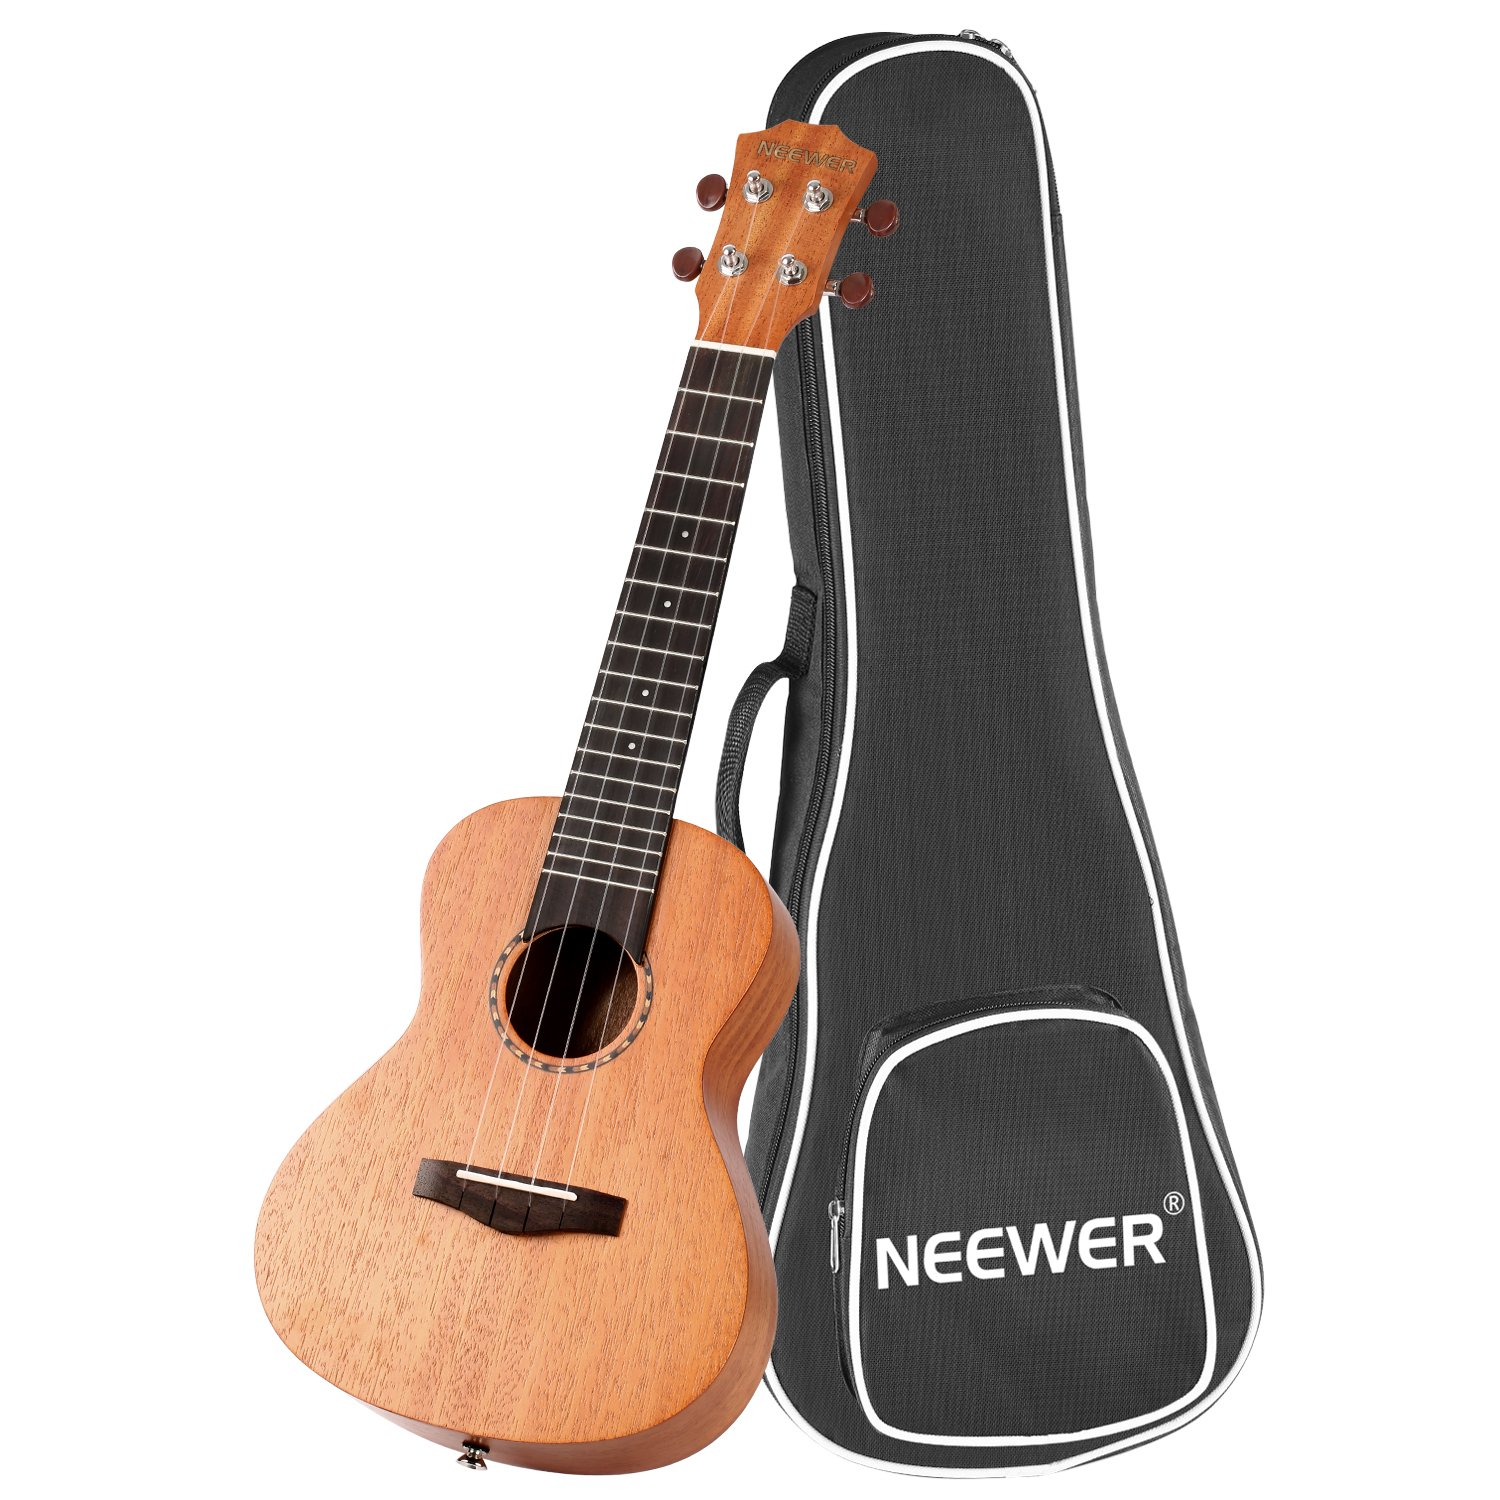 Neewer 23 inches Rosewood Ukulele Bundle with Gig Bag, 4 Silver Carbon Strings, Metal Tuning Peg, Ideal for Beginner Music Lover 40089597